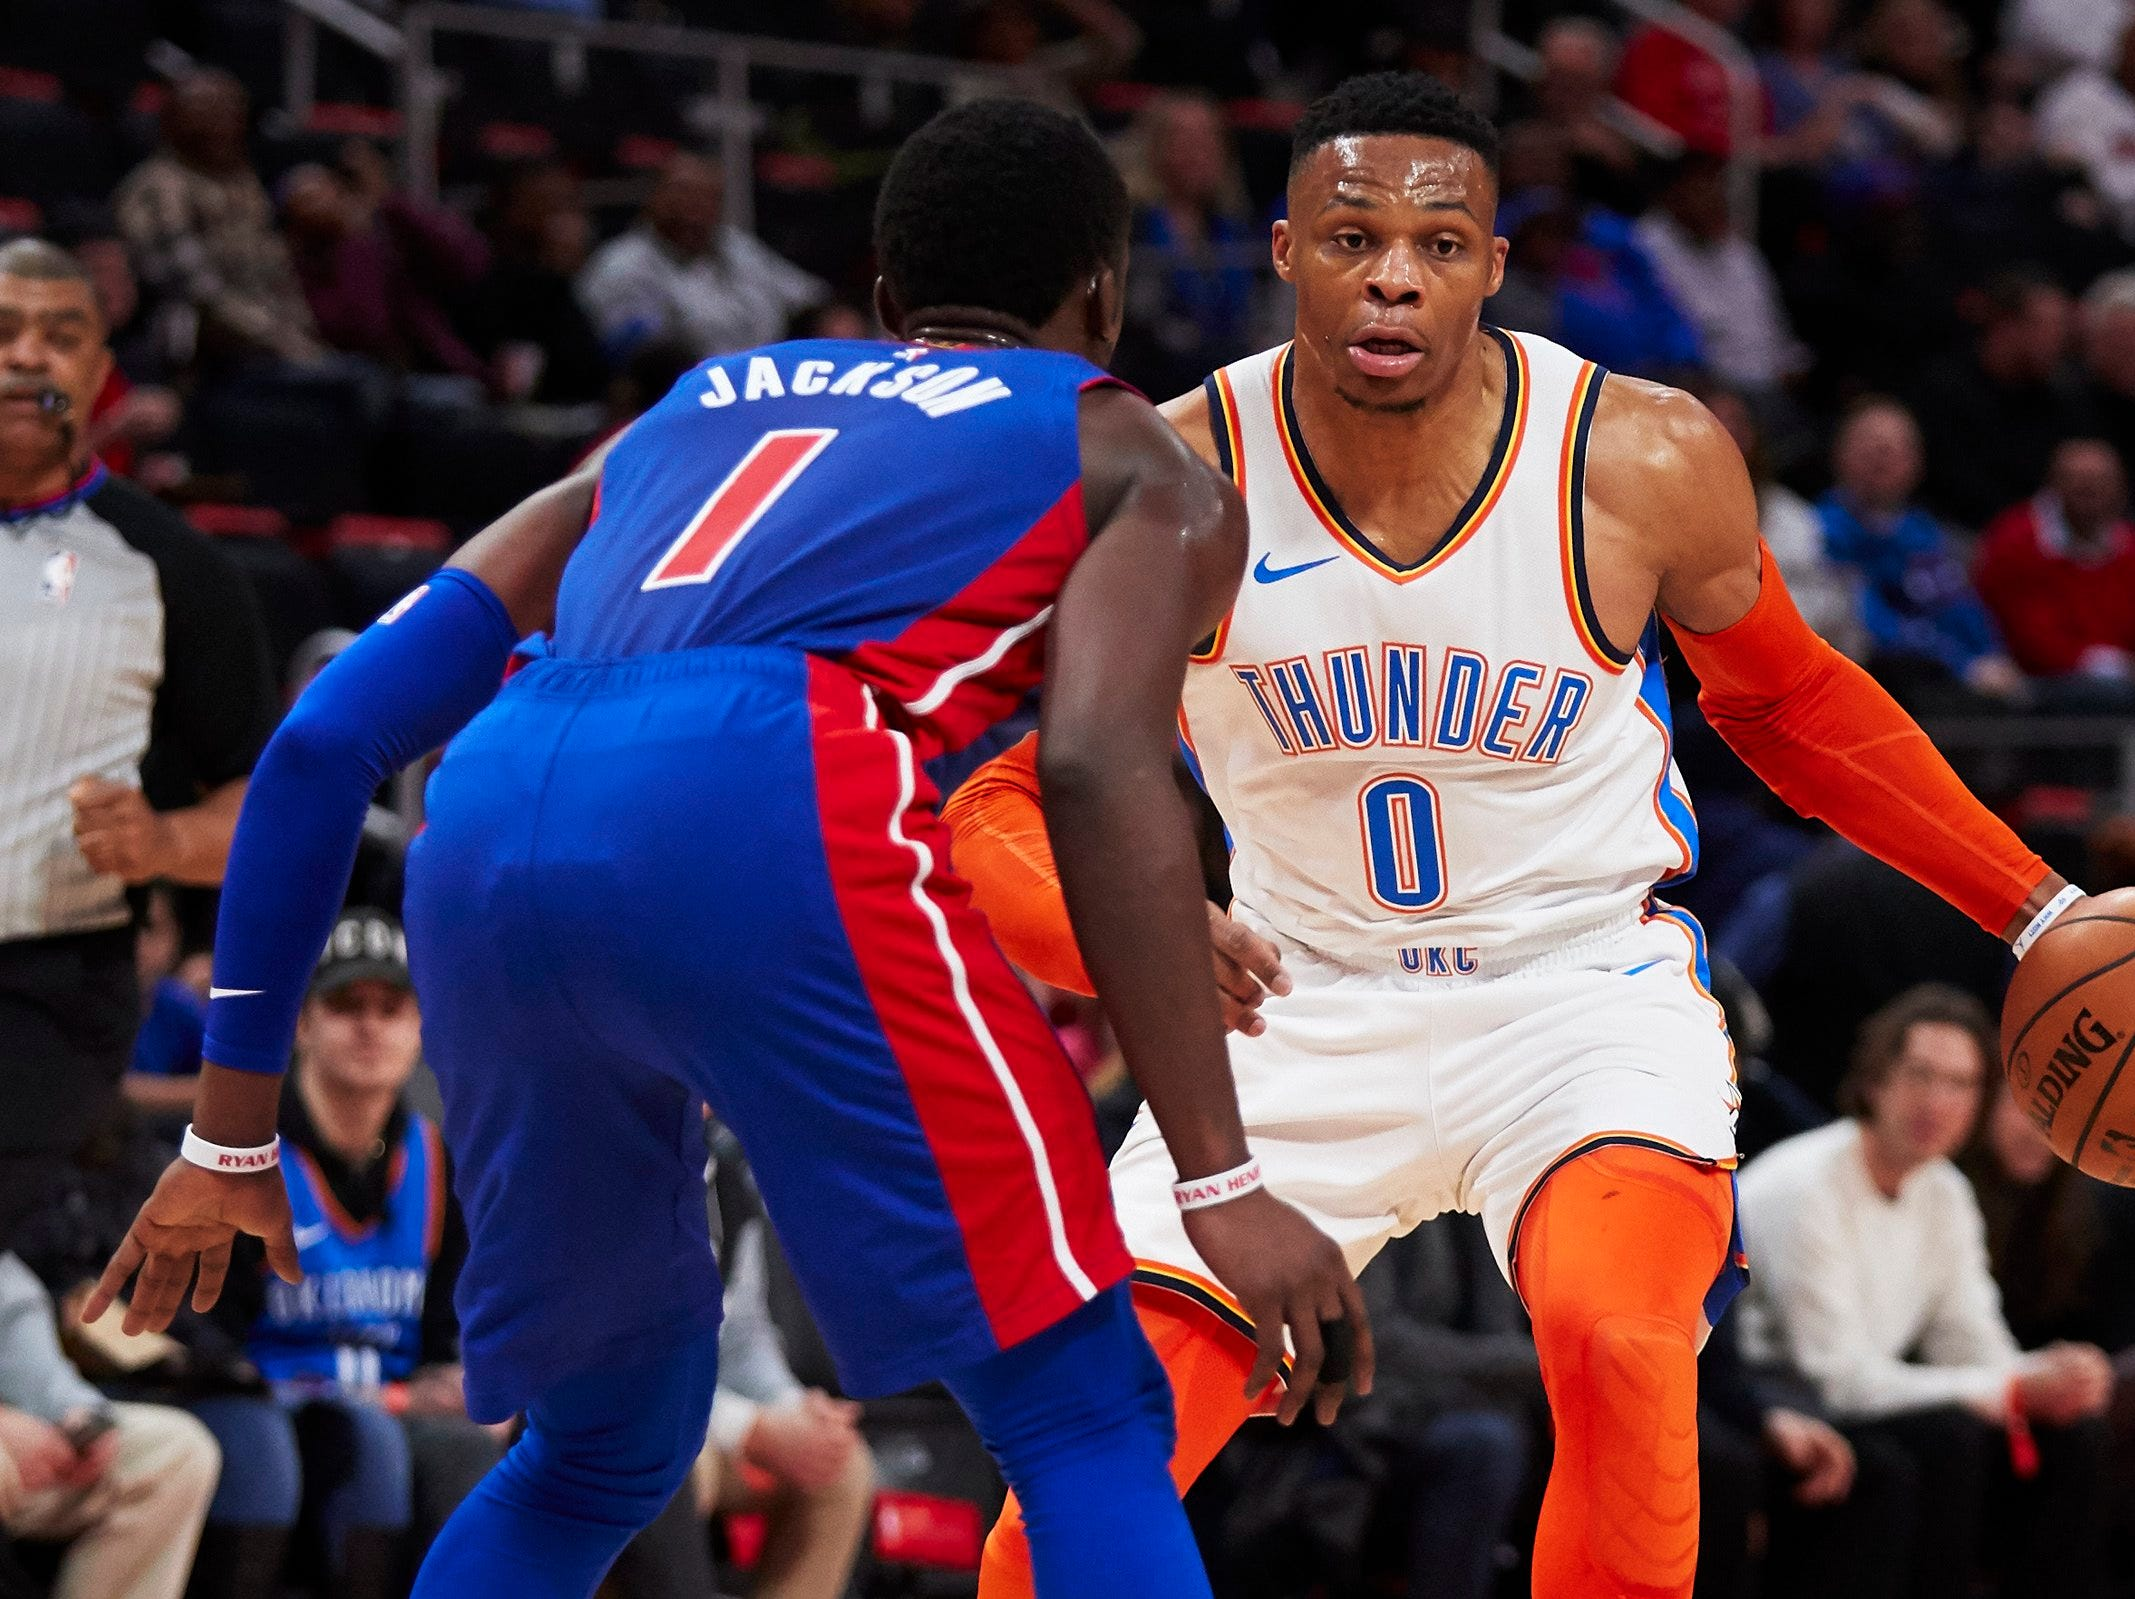 Oklahoma City Thunder guard Russell Westbrook (0) dribbles defended by Detroit Pistons guard Reggie Jackson (1) in the first half at Little Caesars Arena.